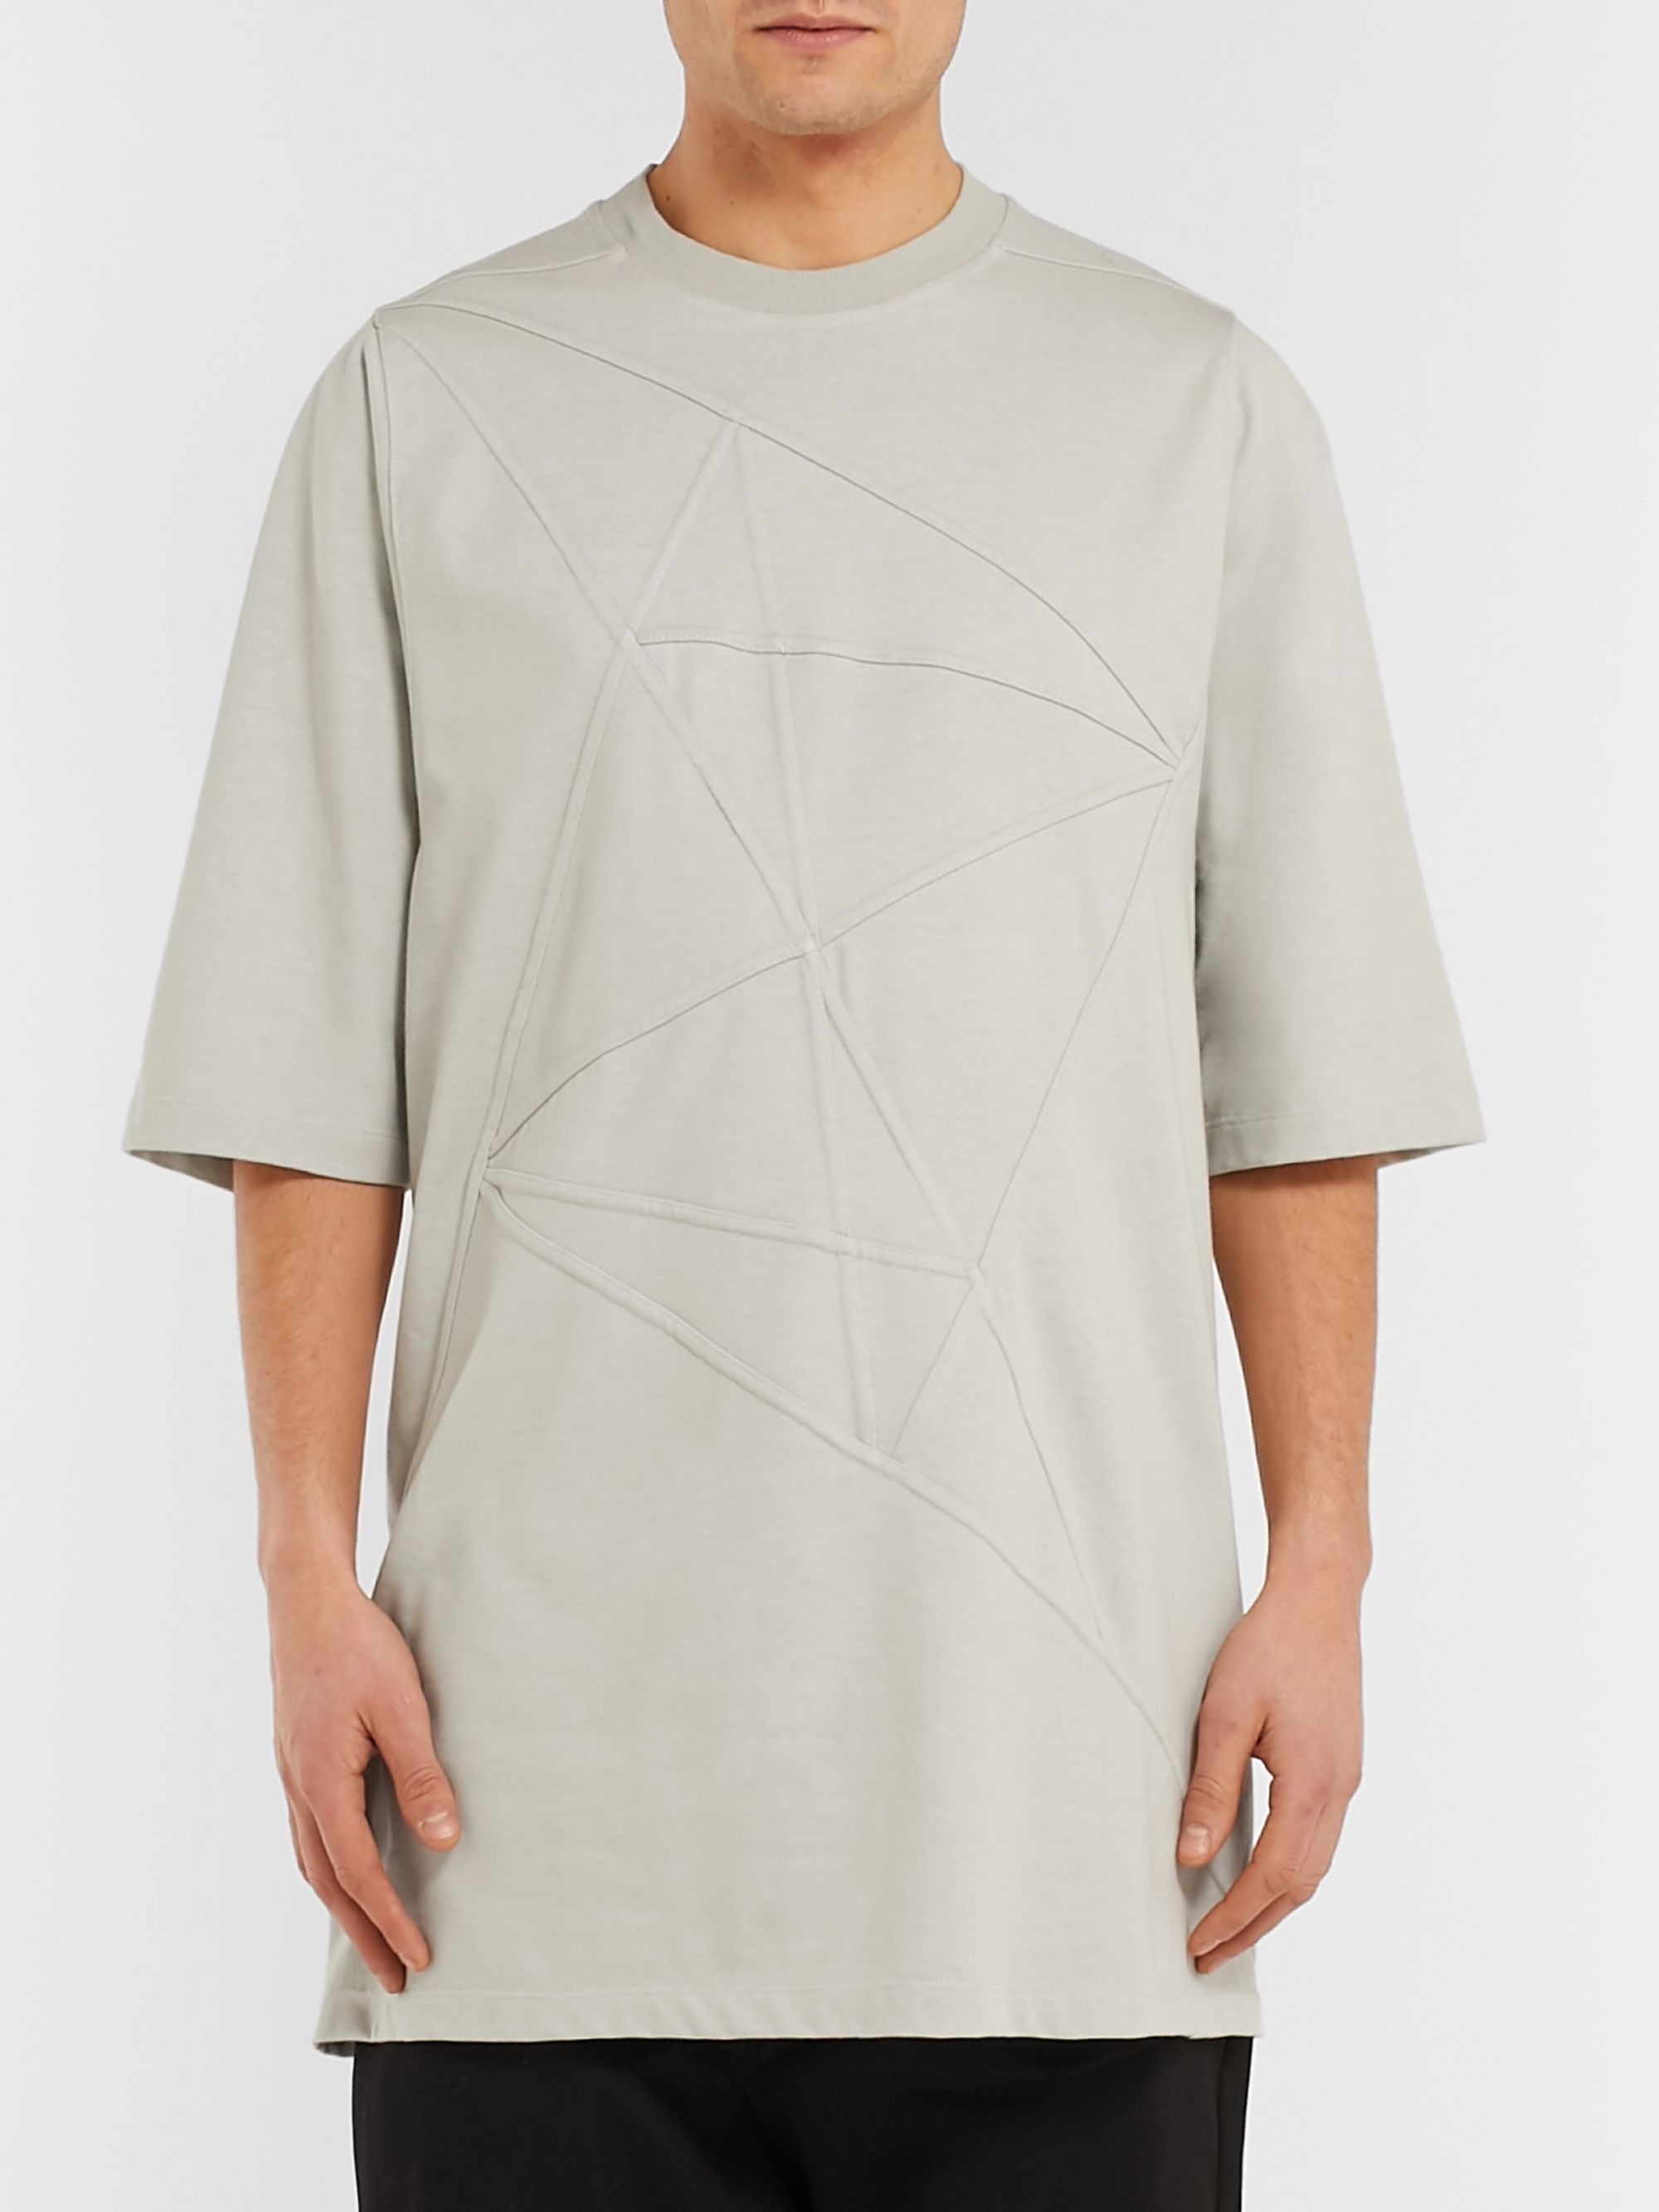 Rick Owens Oversized Panelled Cotton-Jersey T-Shirt